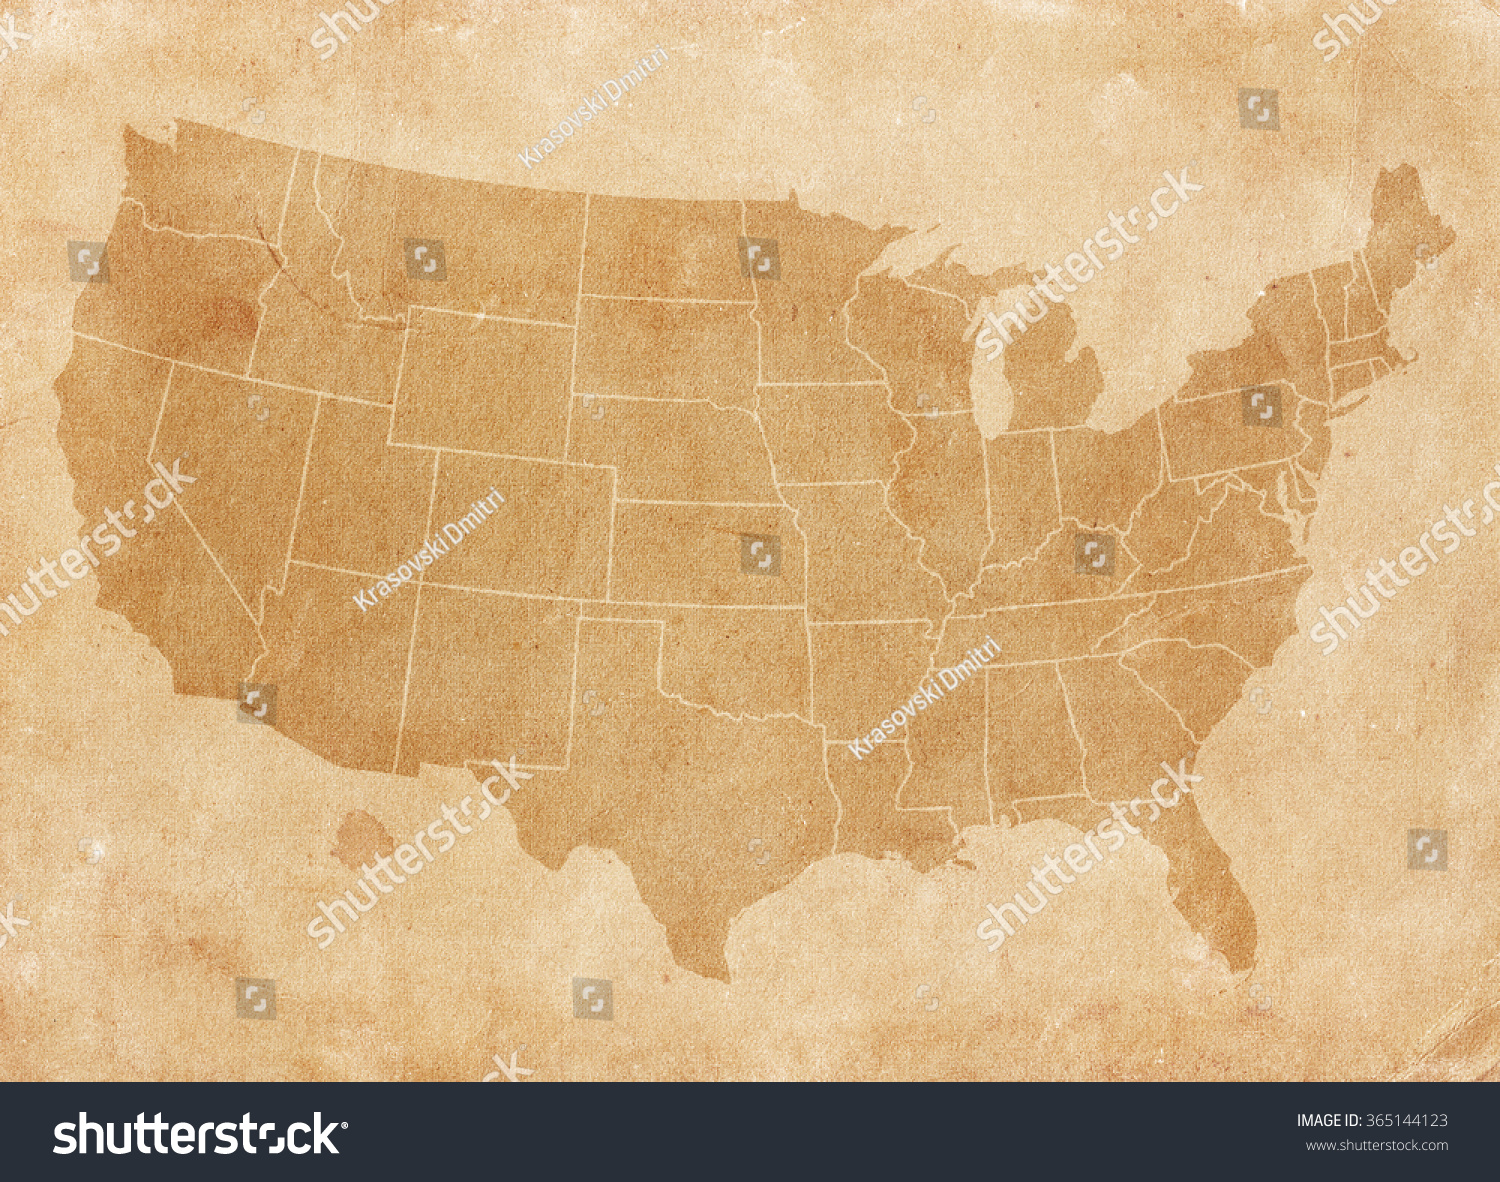 Usa Map On Brown Paper Vintage Stock Photo Shutterstock - Usa map vintage